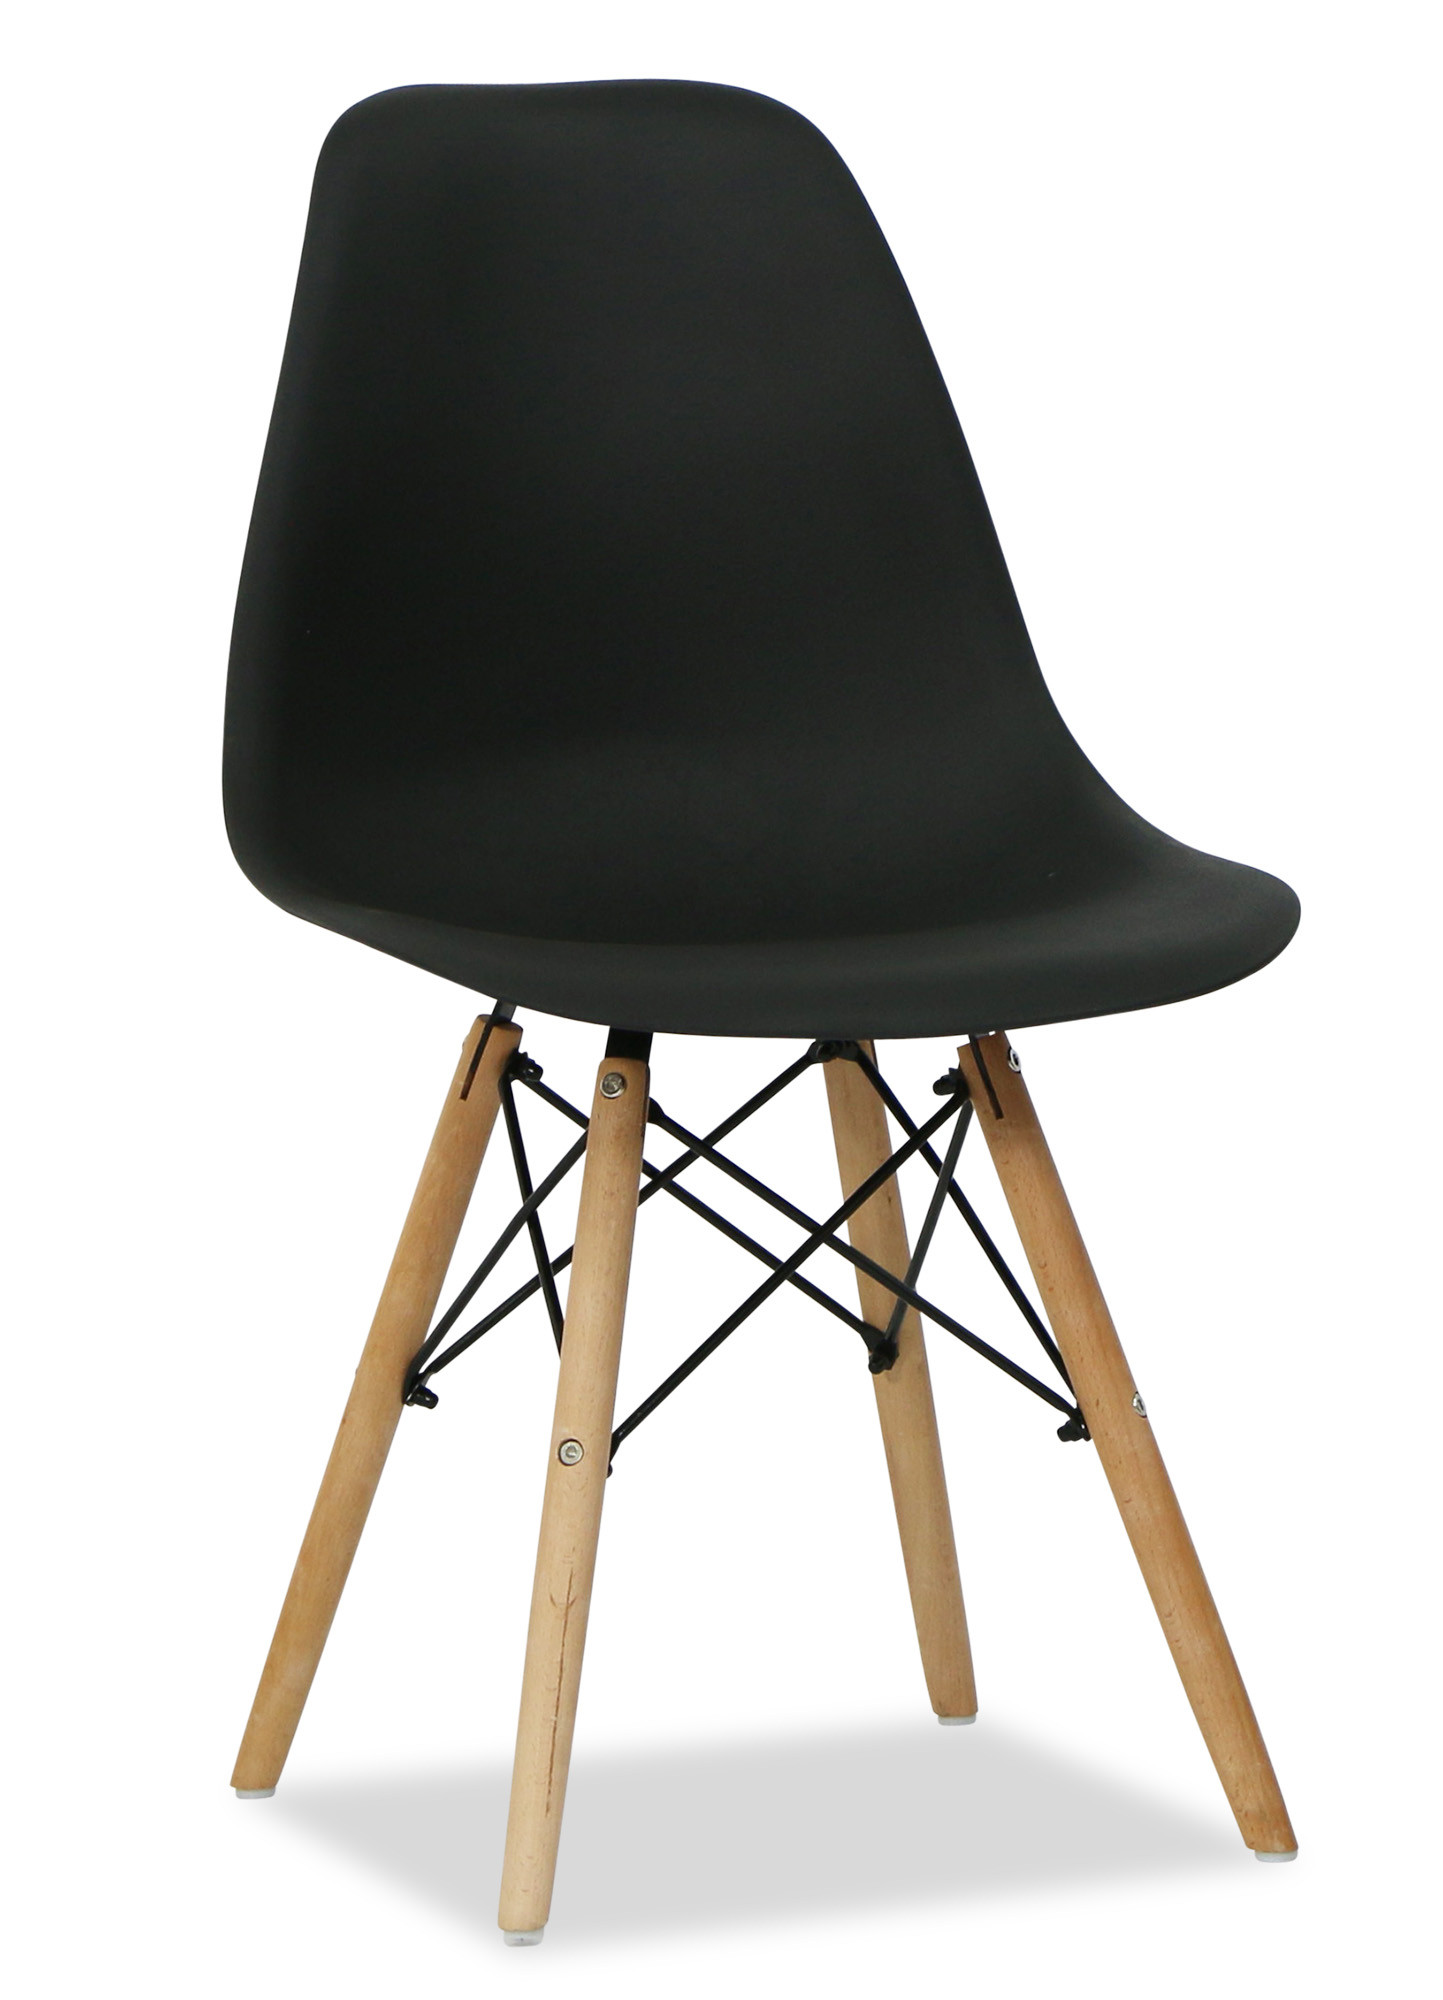 Designer Indoor Chairs Eames Black Replica Designer Chair Dining Chairs